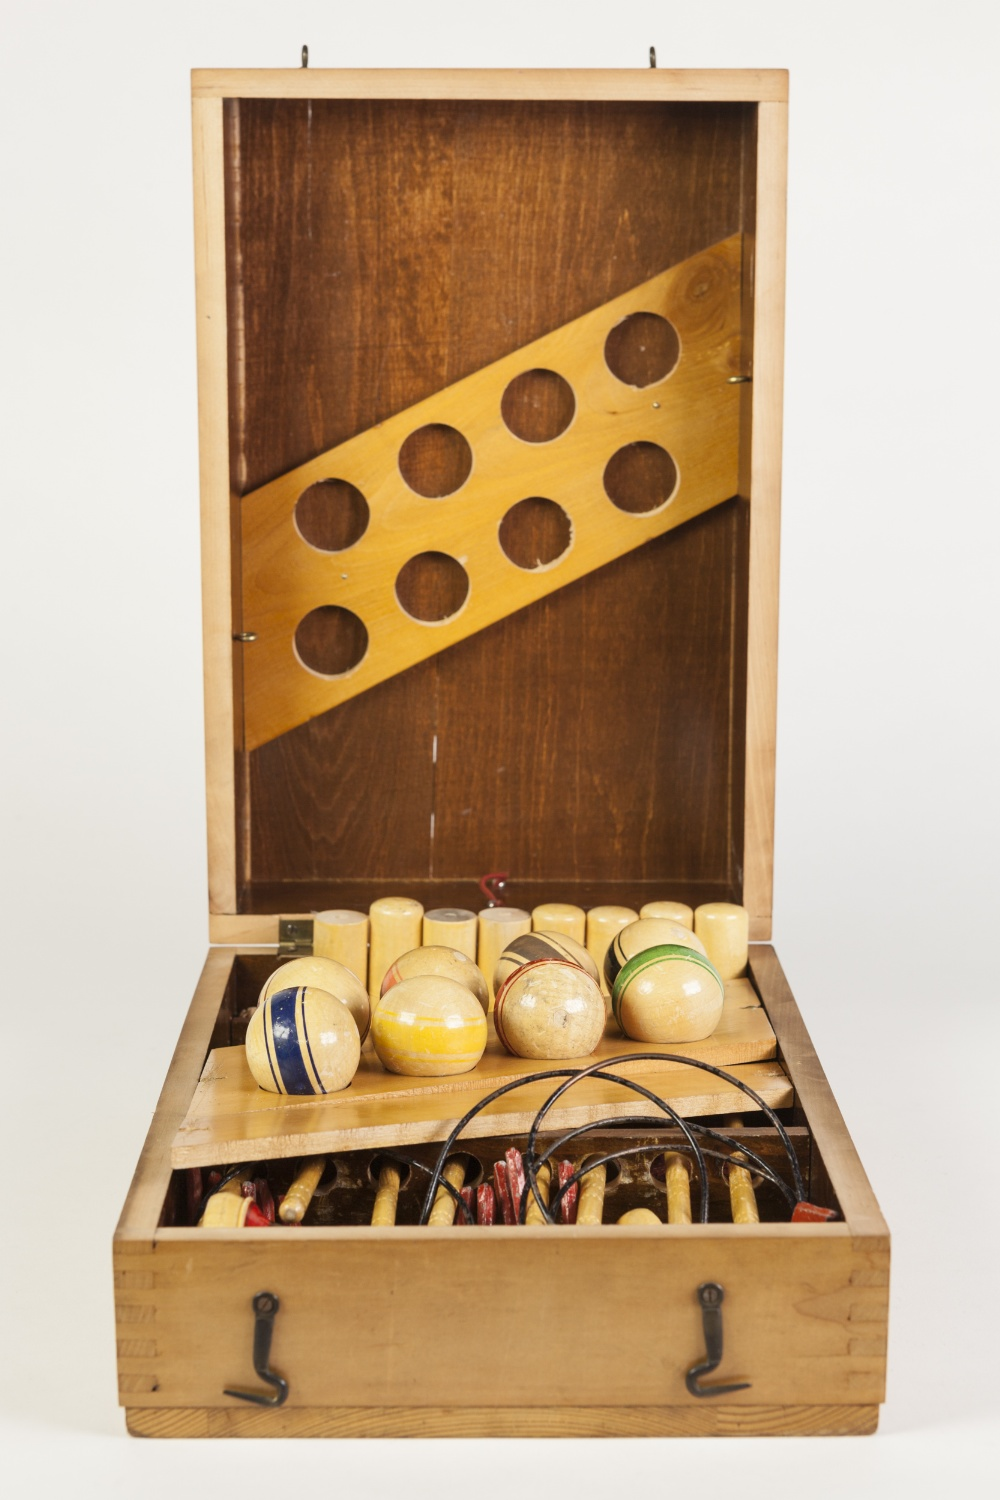 Lot 235 - 20th CENTURY WOODEN BOXED INDOOR CARPET CROQUET SET with eight mallets, eight wooden balls, metal